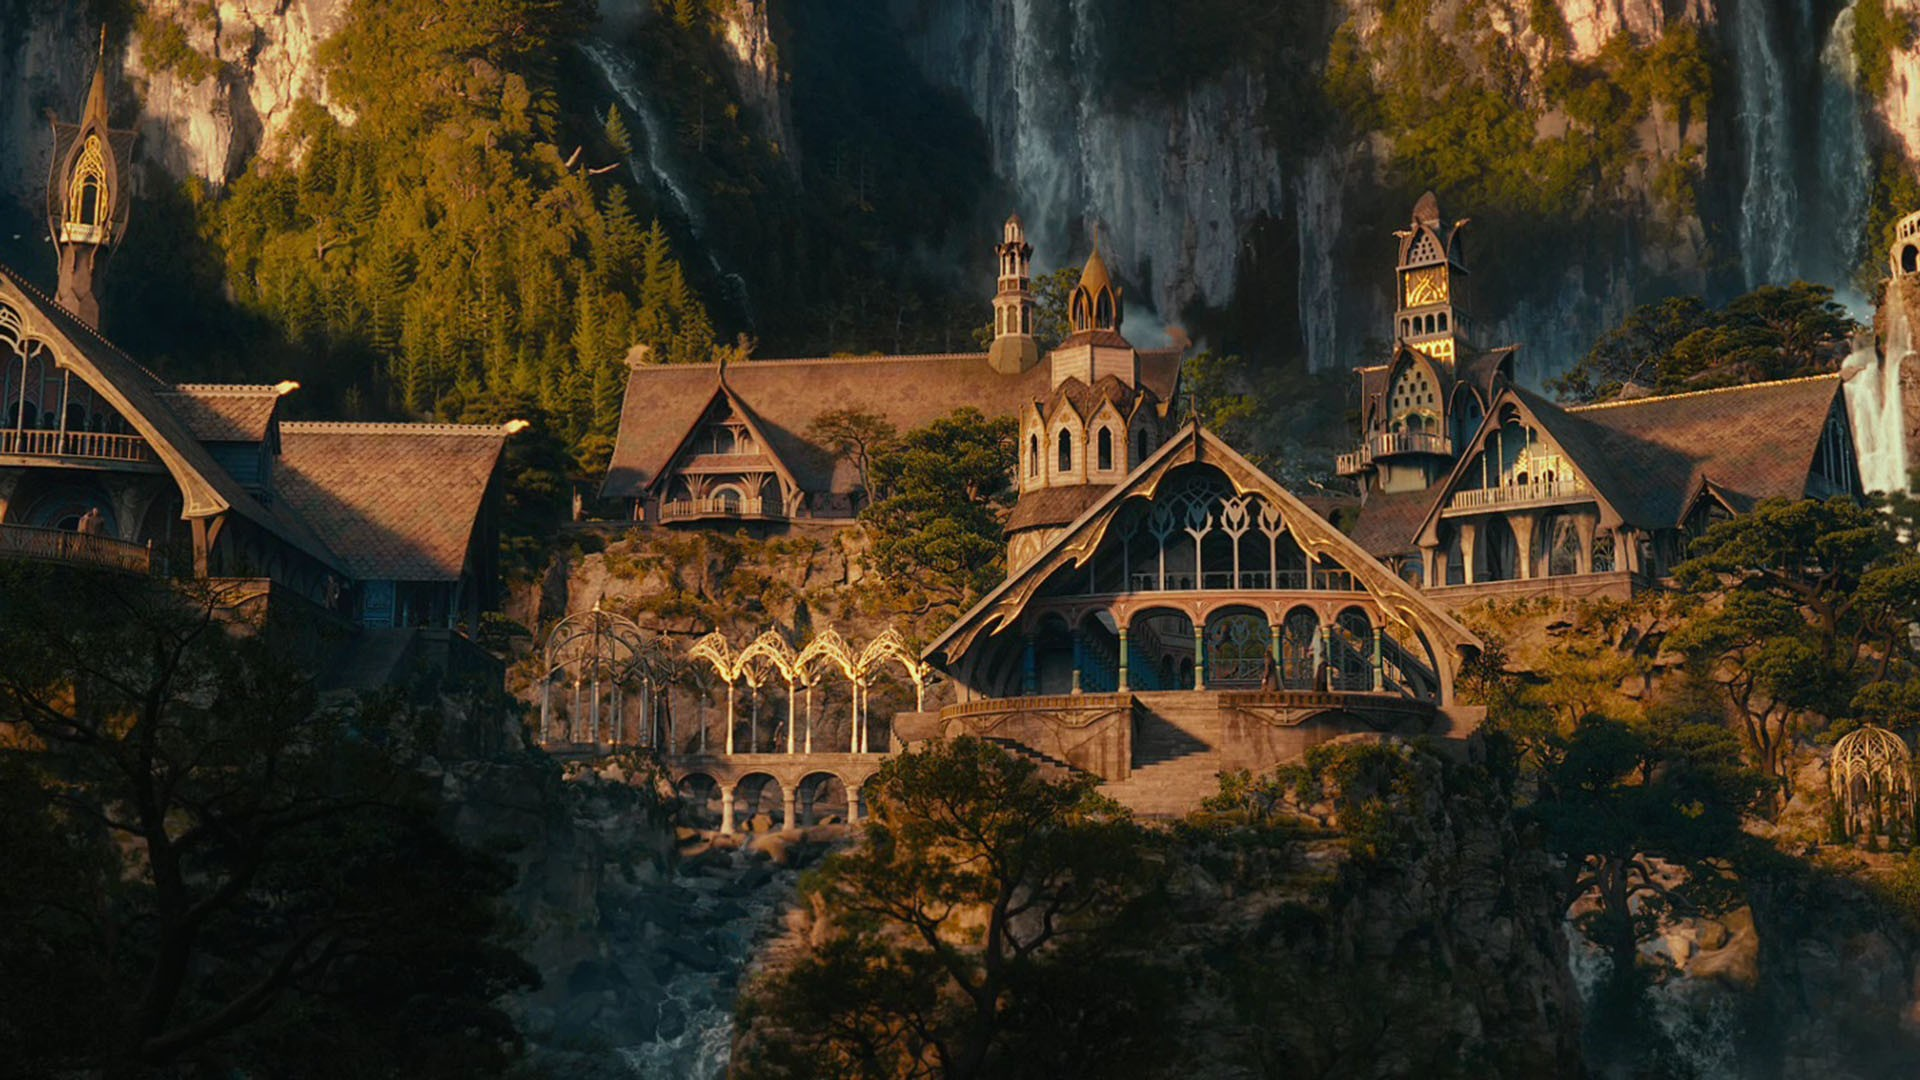 rivendell wallpaper - photo #7